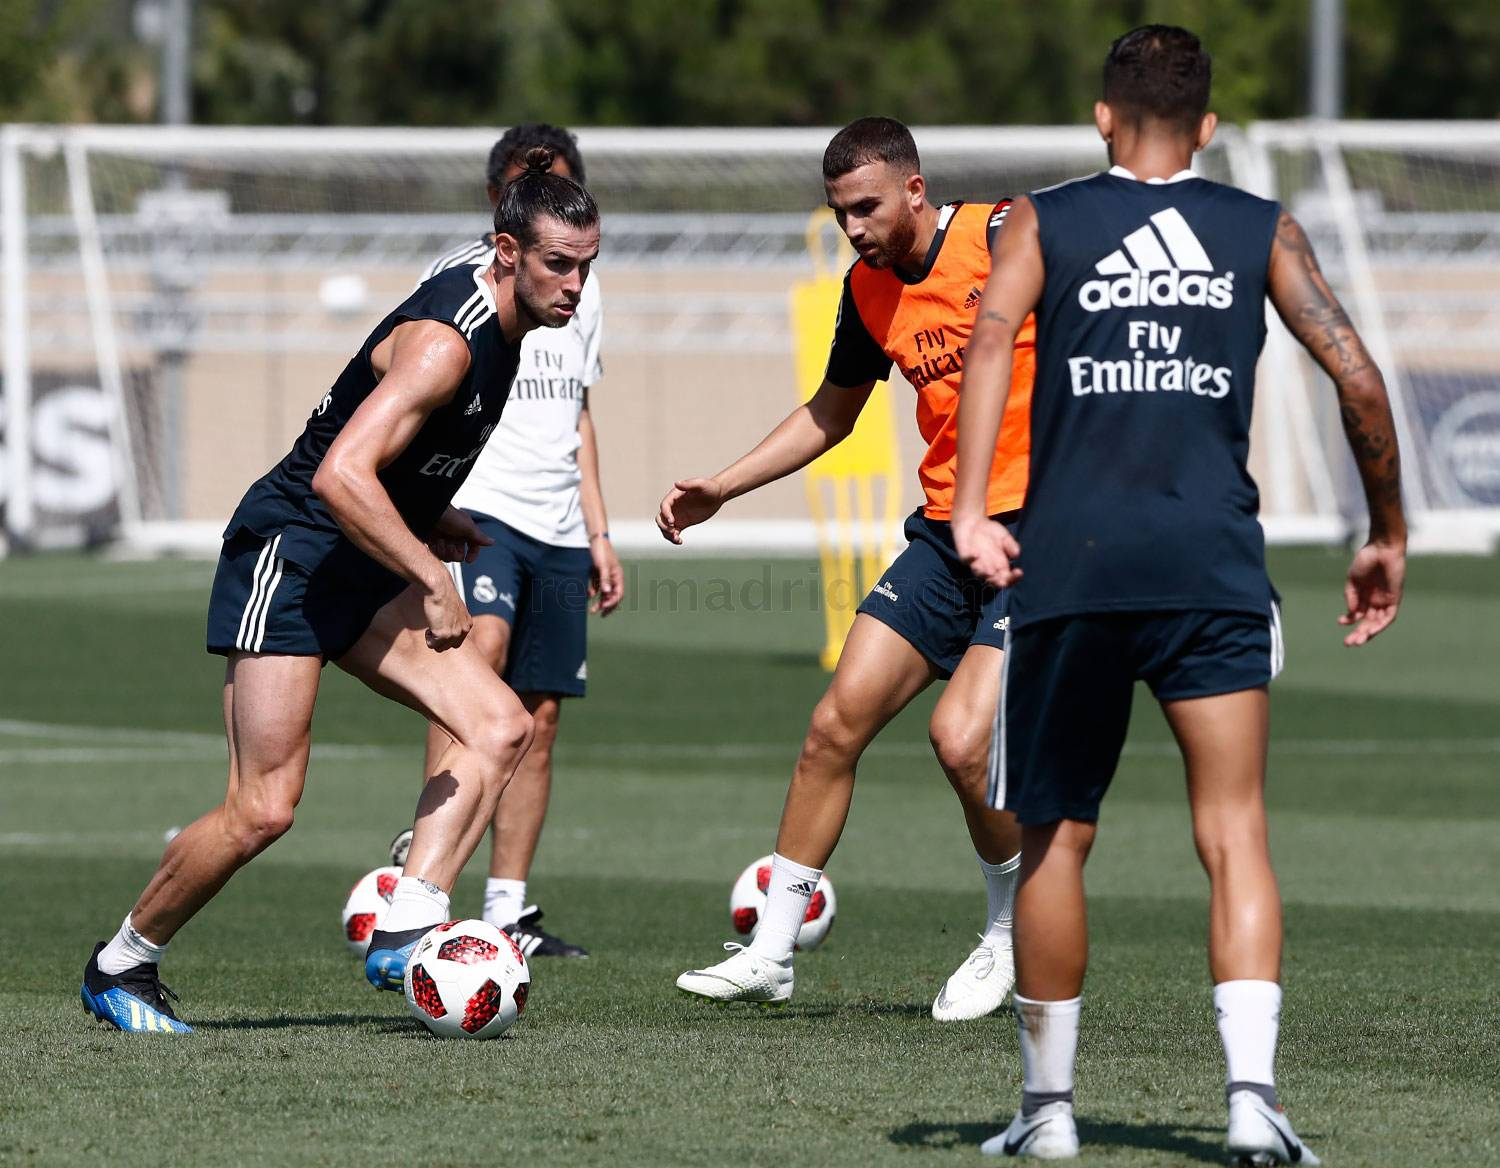 Real Madrid - Entrenamiento del Real Madrid - 18-07-2018